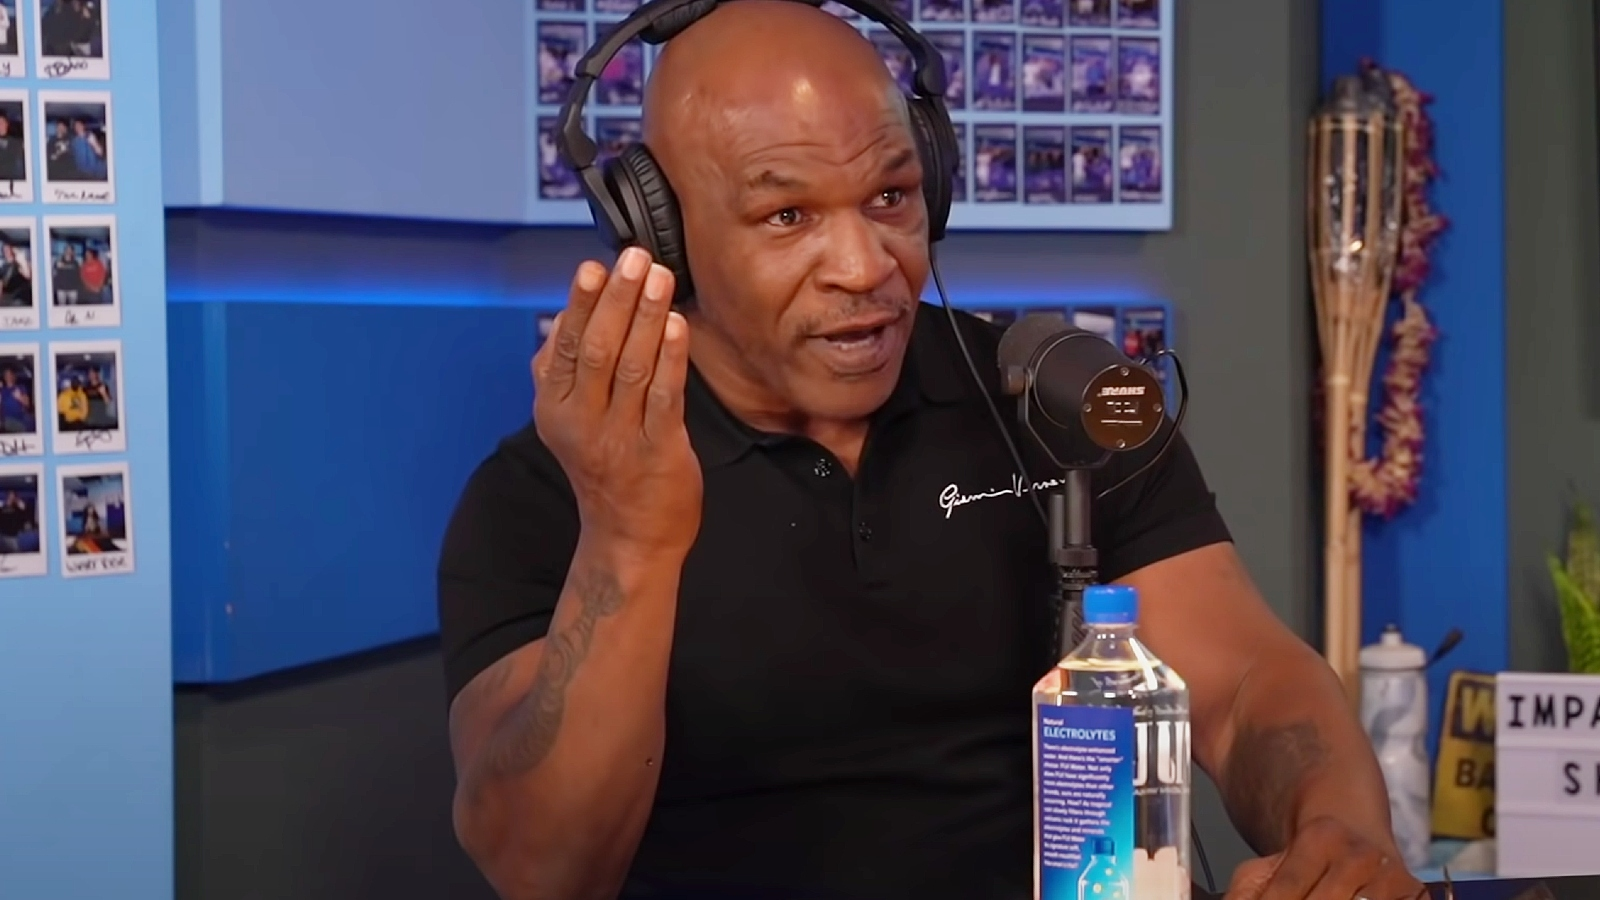 Mike Tyson boxing on Impaulsive